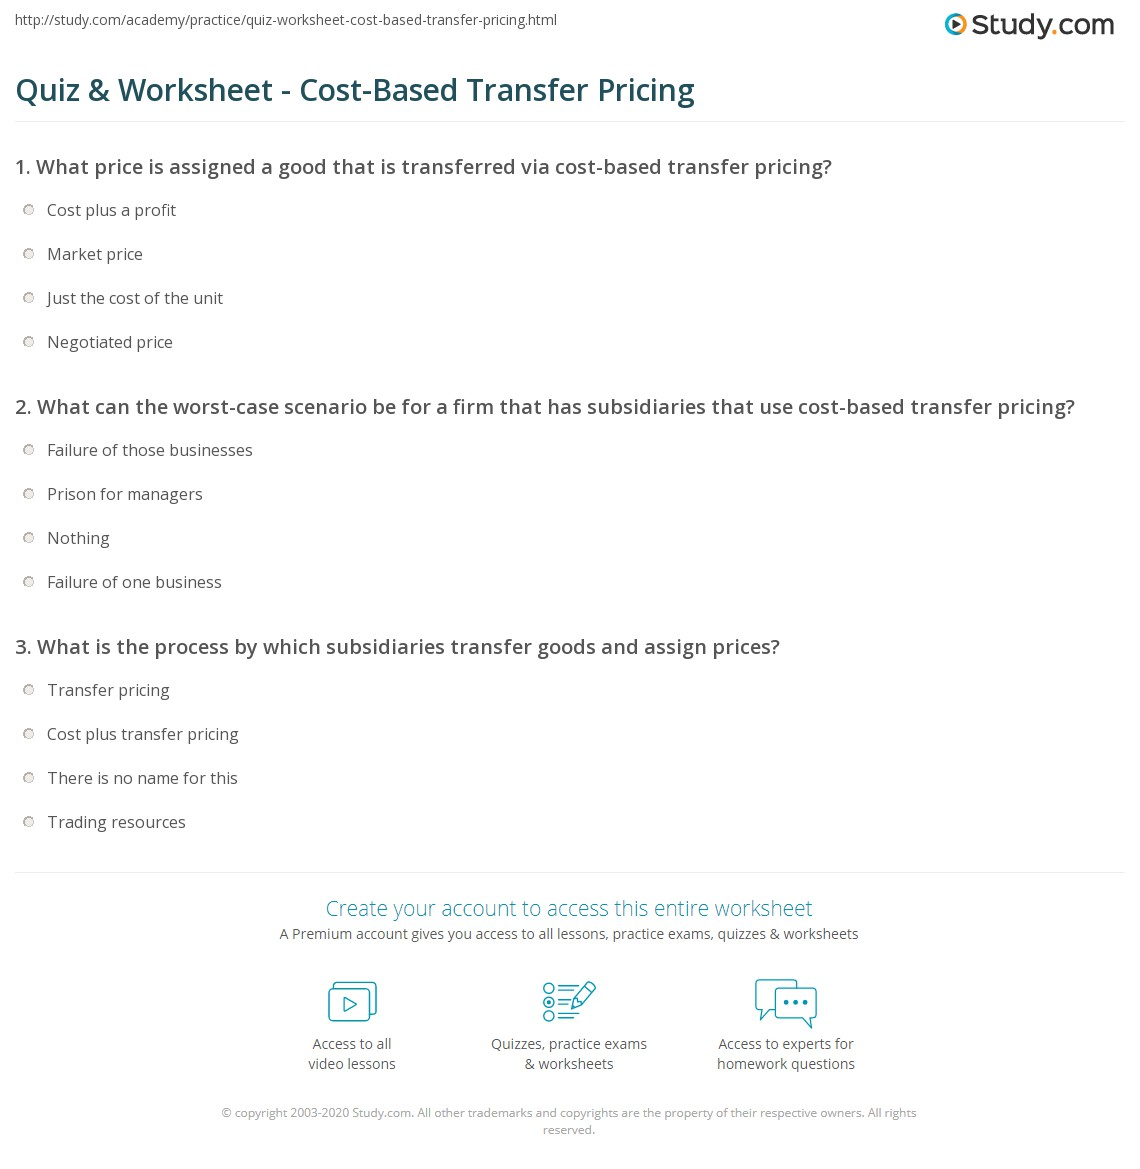 quiz & worksheet - cost-based transfer pricing | study